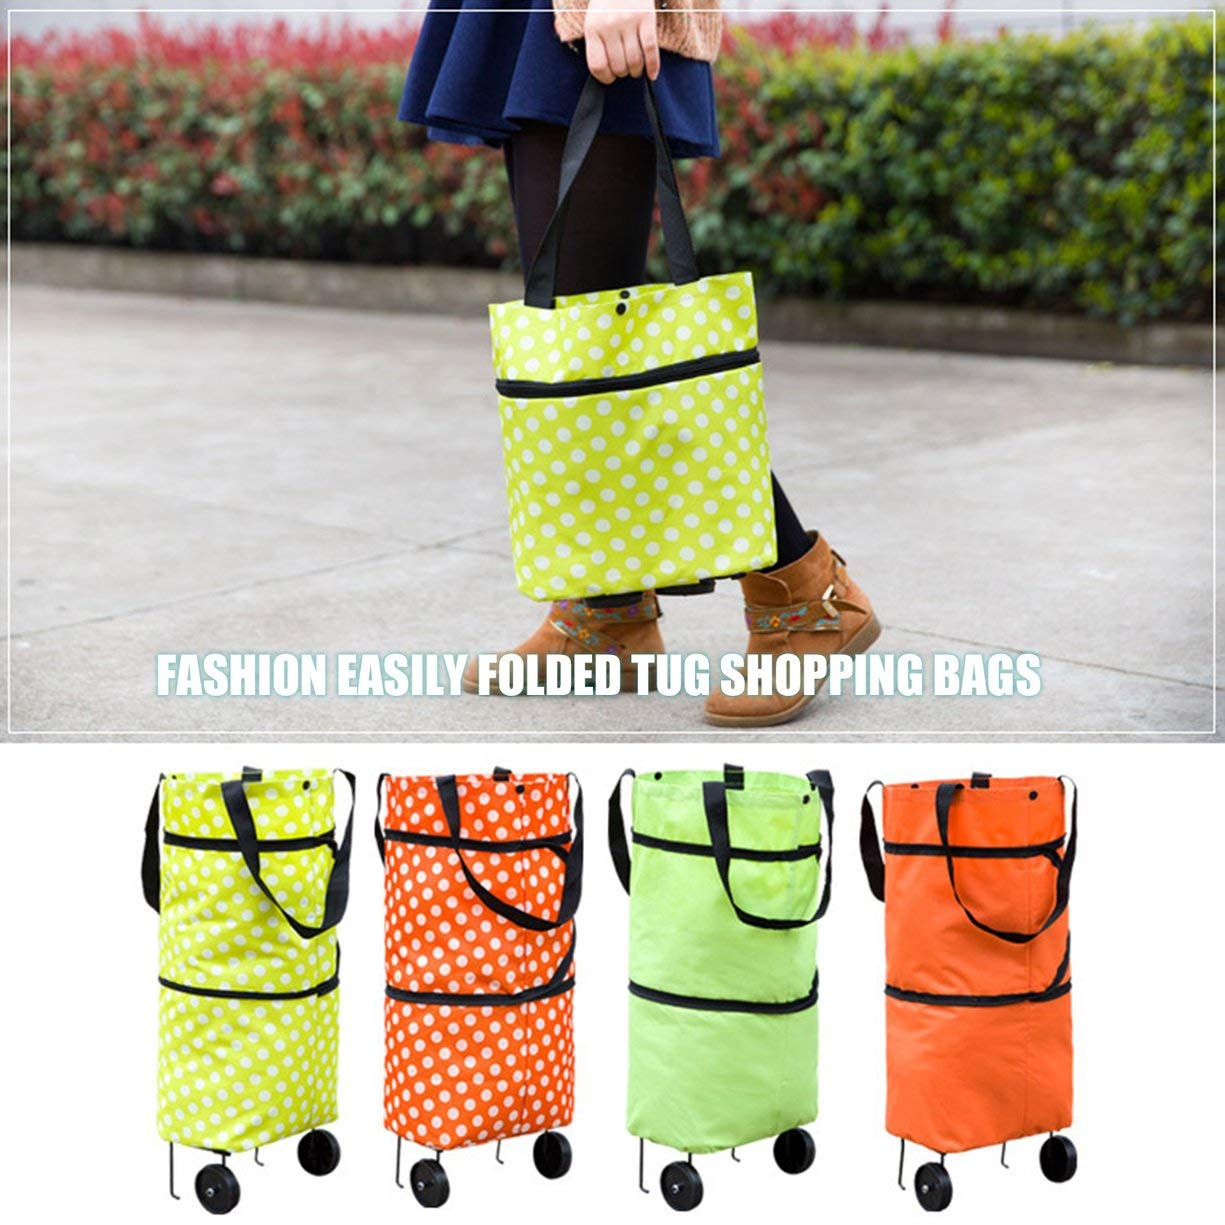 Shopping Trolley Wheel Bag,Fashionable Design Large Capacity Waterproof Oxford Cloth Foldable Shopping Trolley Wheel Bag Traval Cart Luggage Bag by Detectoy (Image #4)